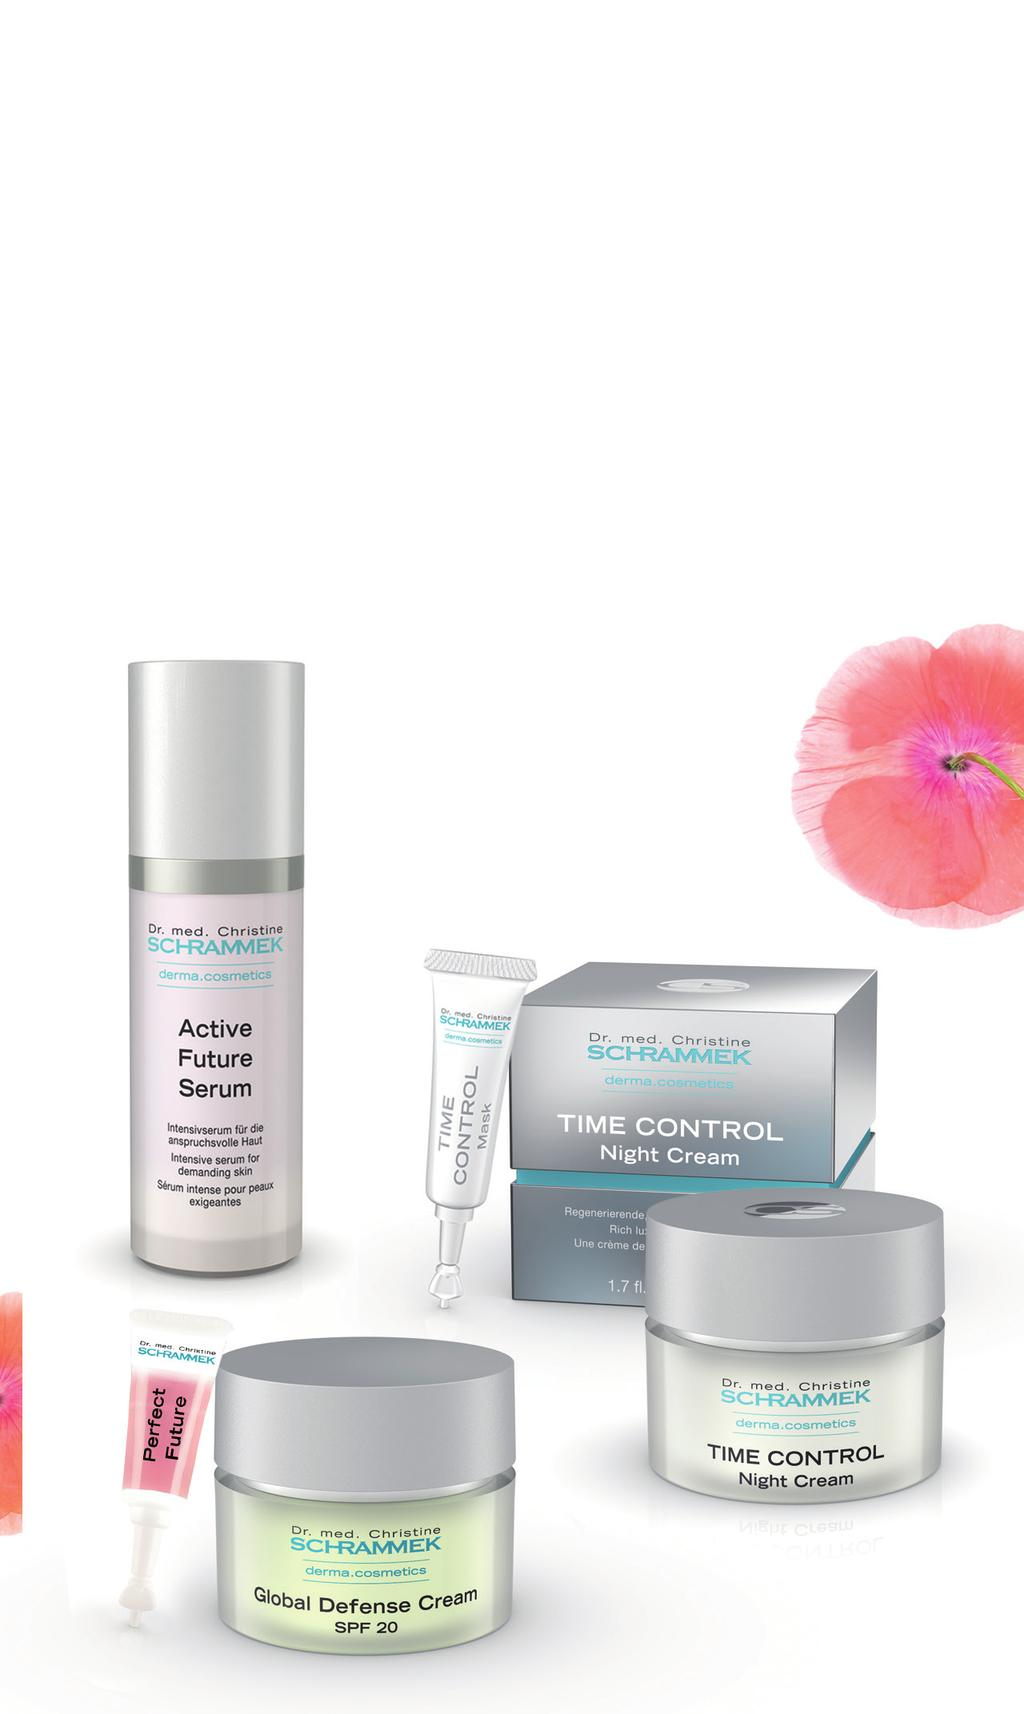 VITALITY serien består af følgende produkter: Ansigtspleje: ACTIVE FUTURE DAY CREAM ACTIVE FUTURE NIGHT CREAM GLOBAL DEFENSE CREAM TIME CONTROL DAY CREAM TIME CONTROL NIGHT